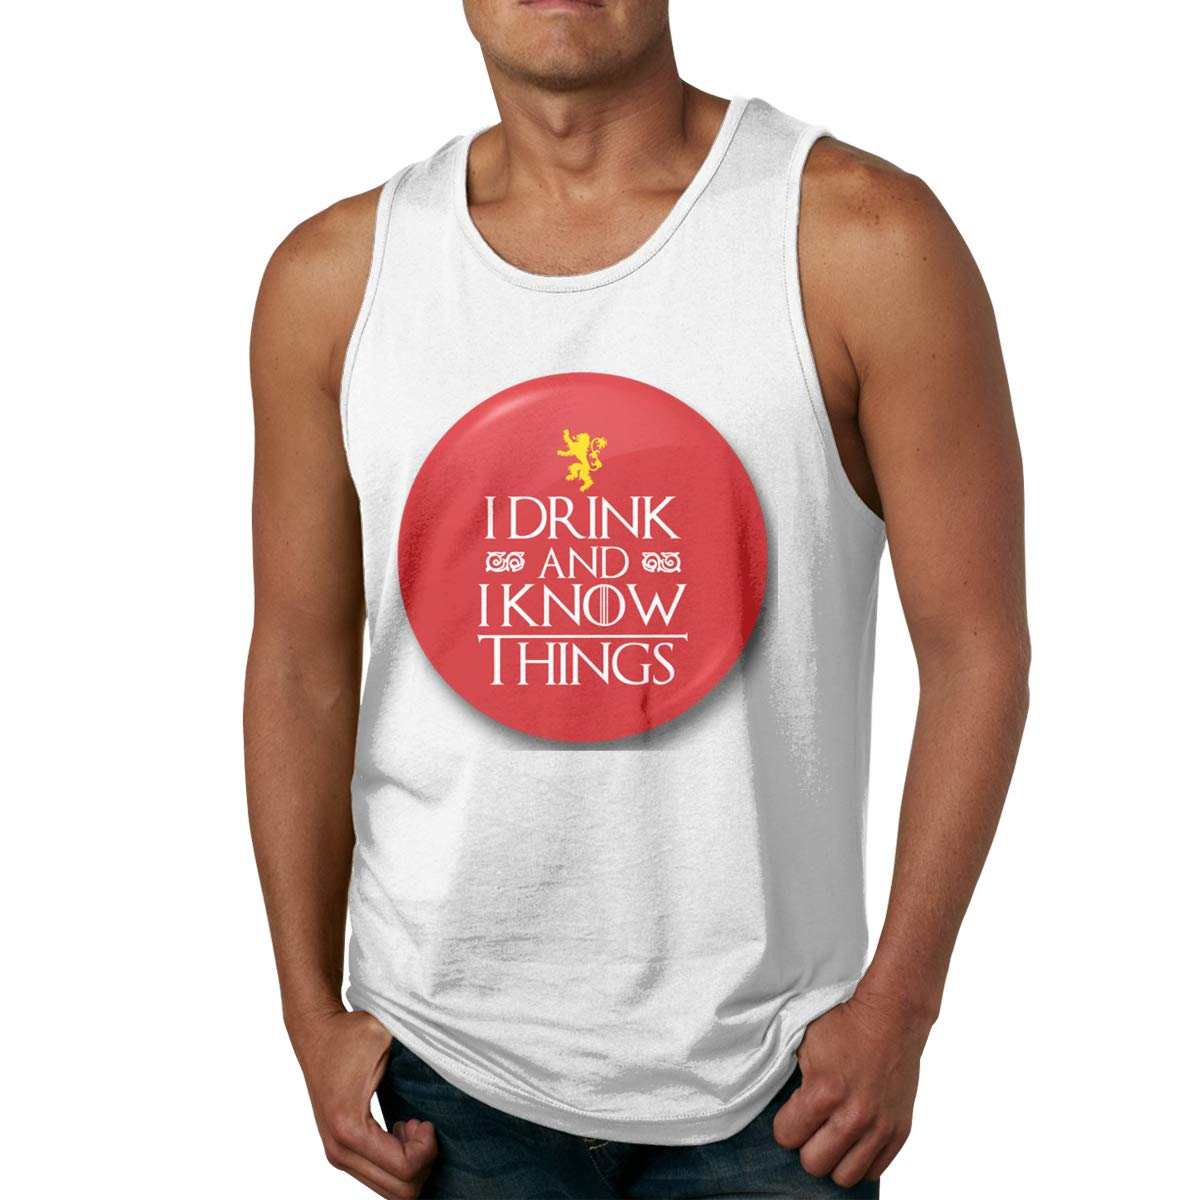 Mens Tank Tops Thrones Drink and Know Things Shirts Summer Undershirts Tees Muscle T Shirt Top